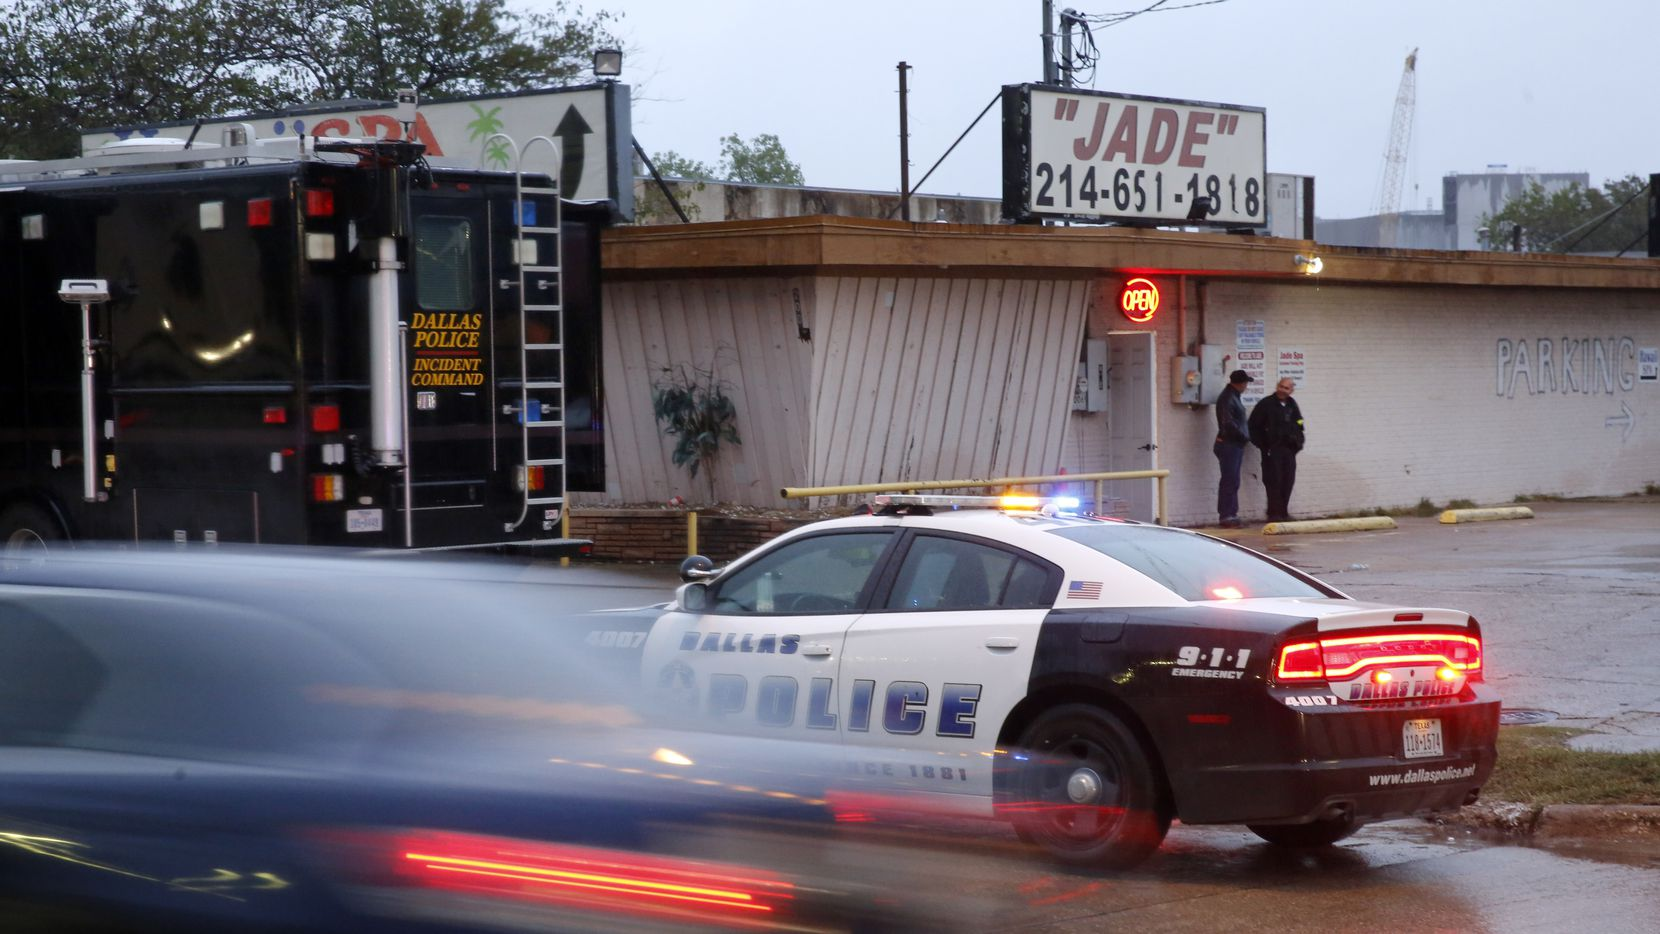 What it looked like early on the morning of Oct. 30, when Dallas police raided Jade Spa -- and, elsewhere, Dragon House in Southlake and other homes and apartments around North Texas.